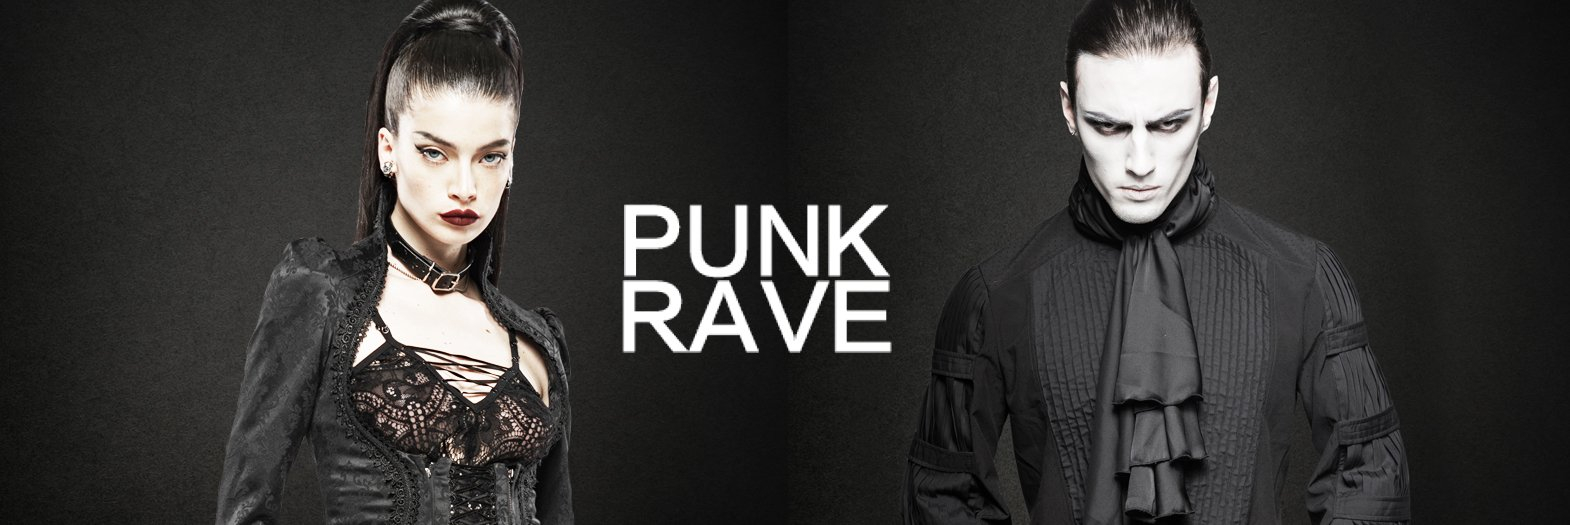 PUNK RAVE Gothic fashion